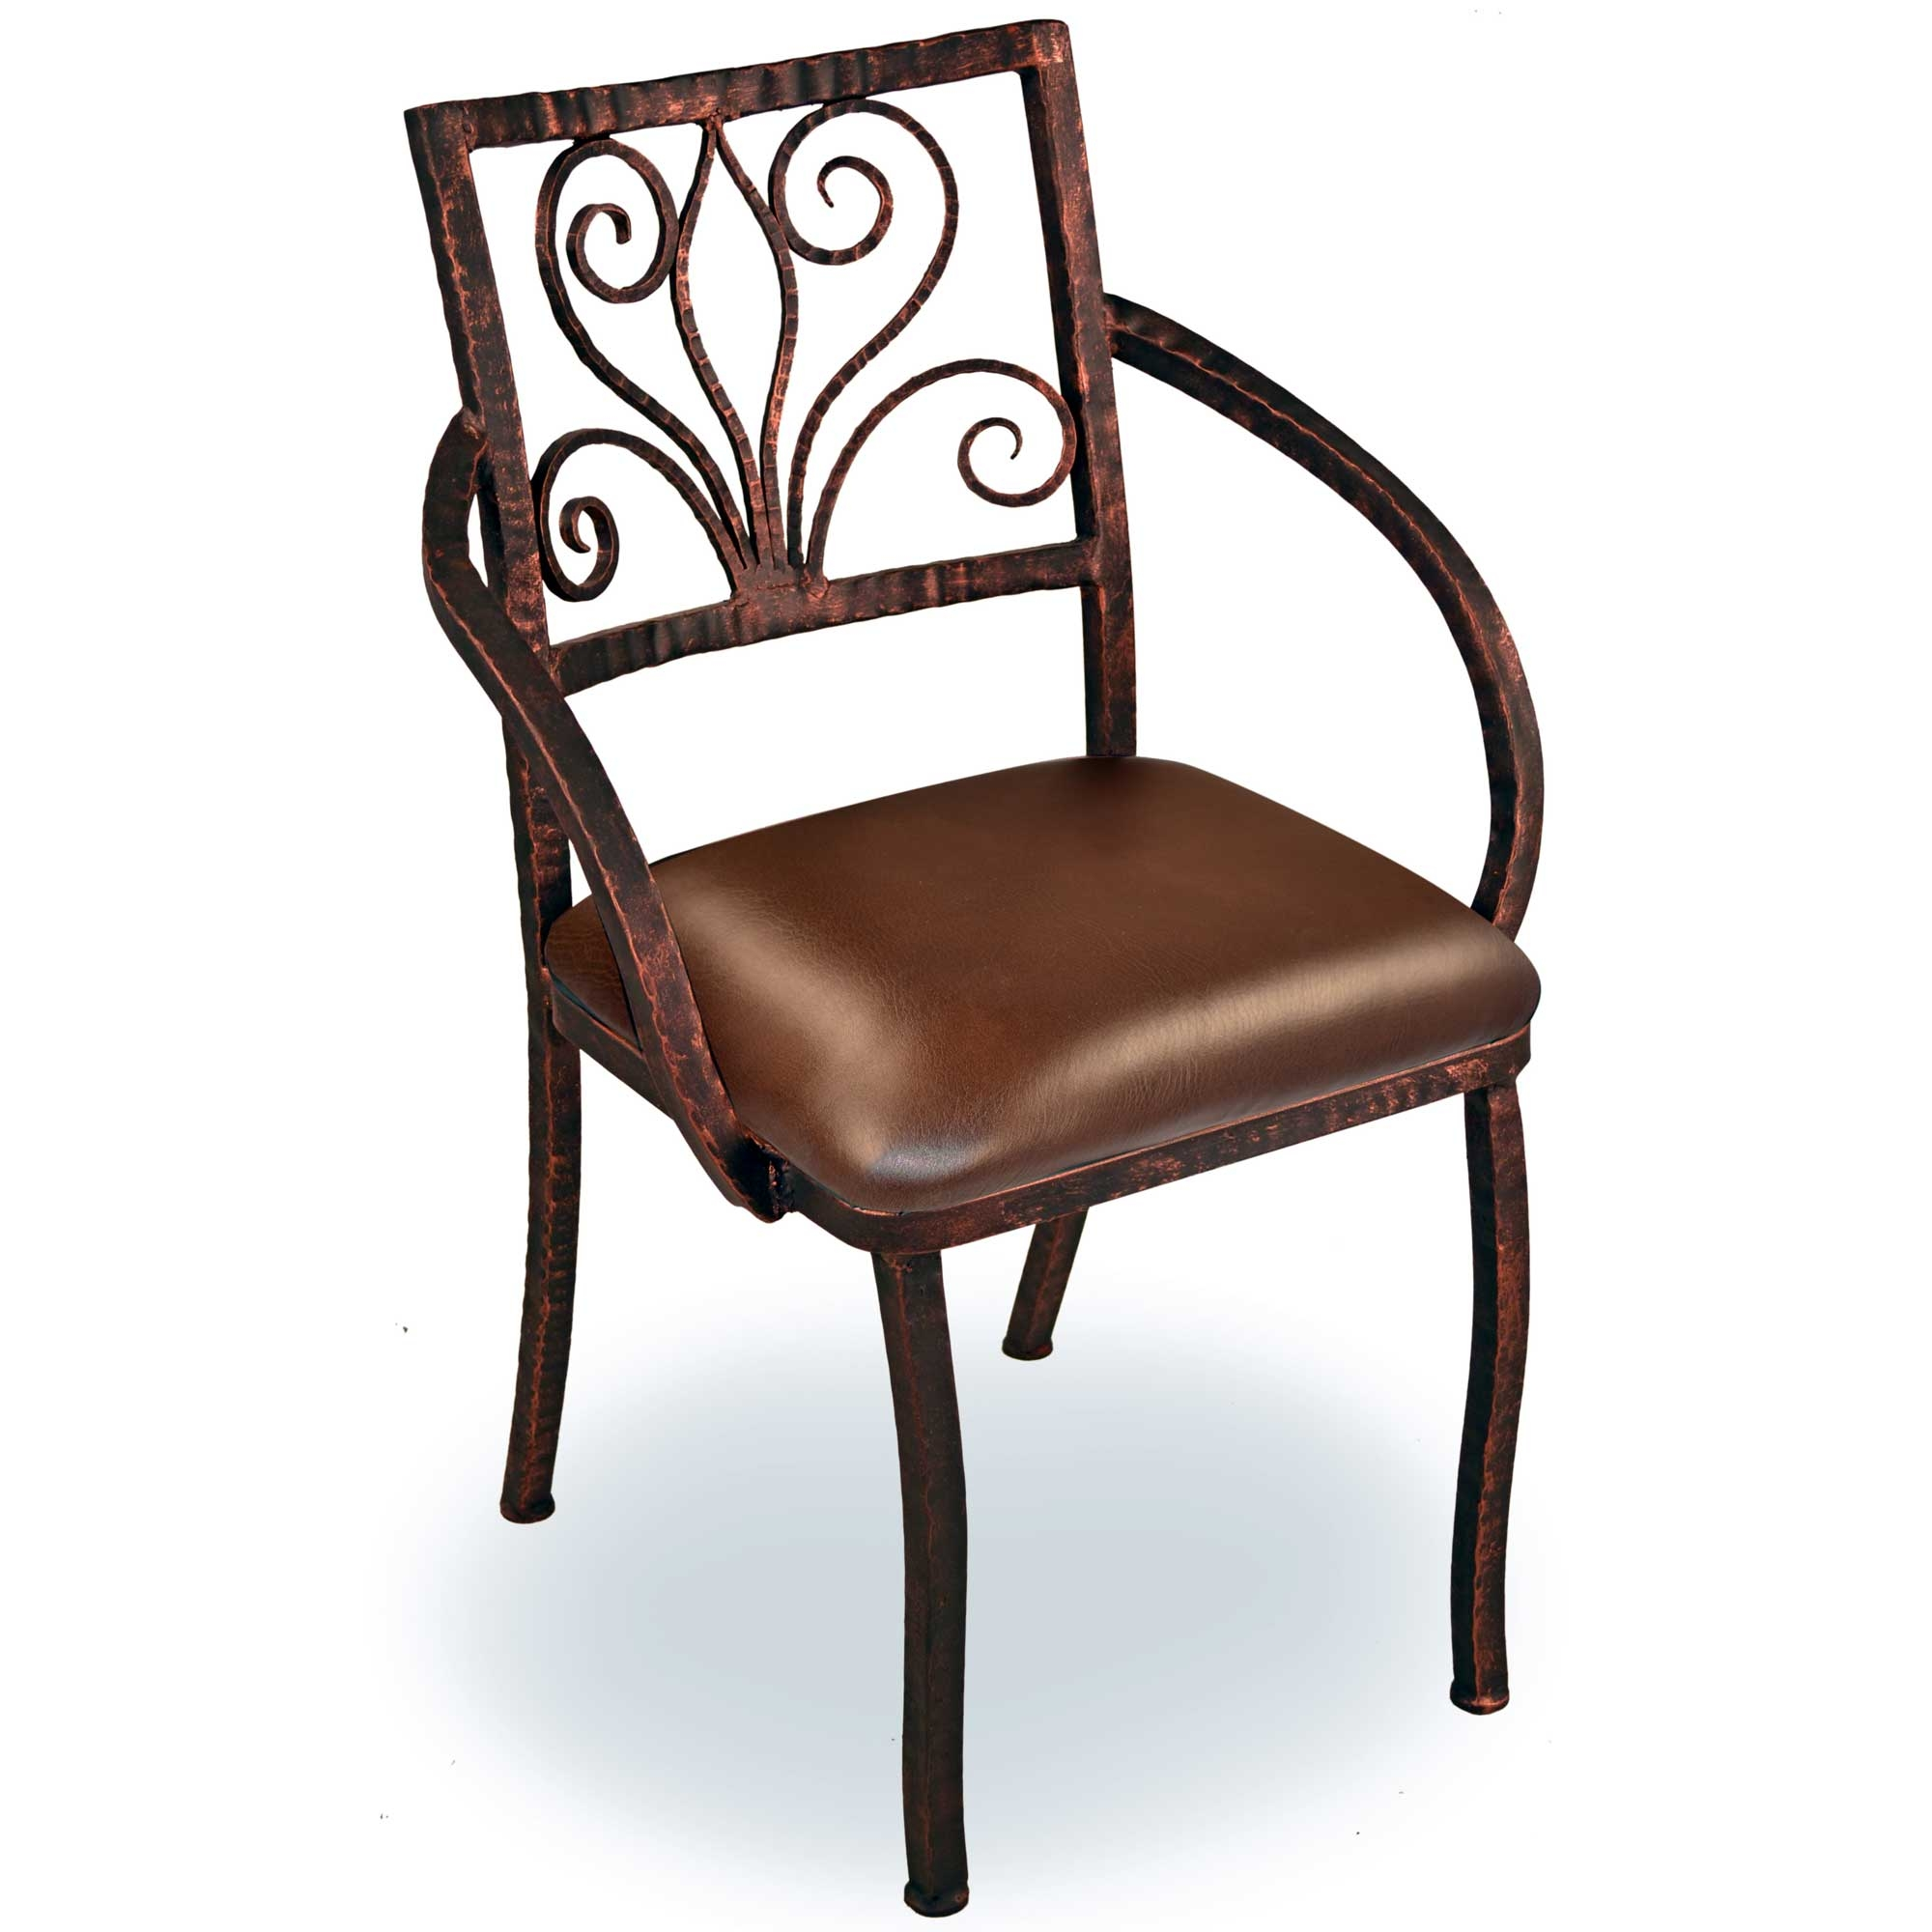 Pictured is the wrought iron alexander dining arm with